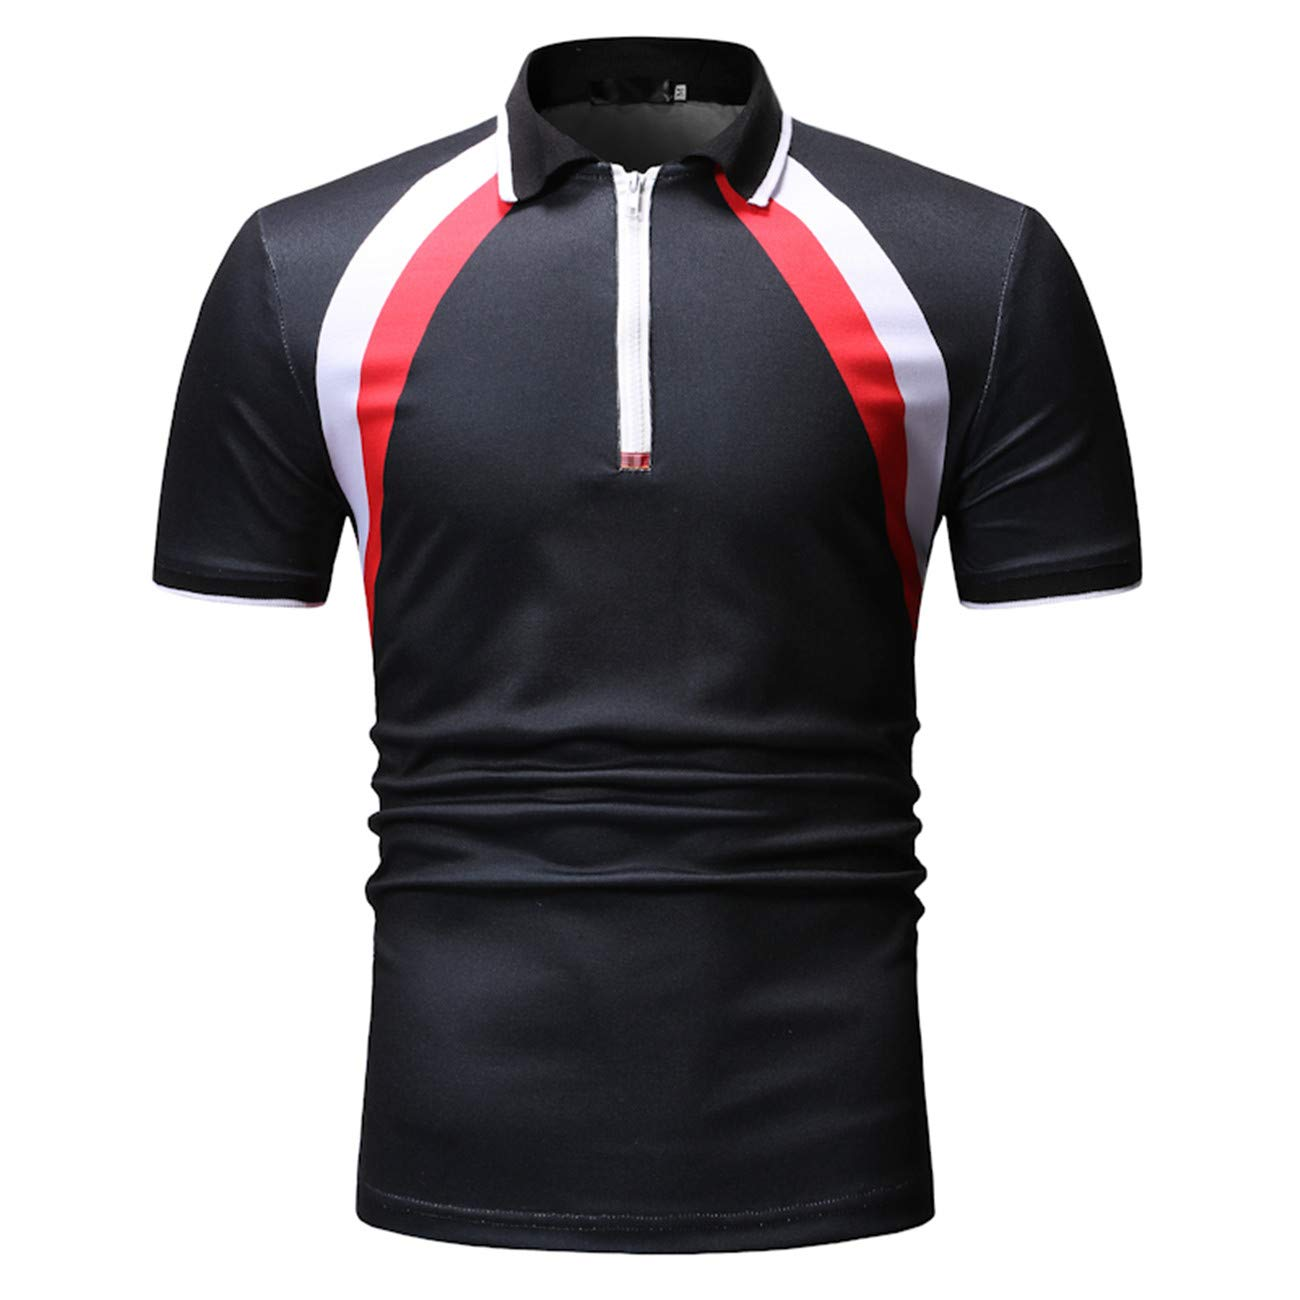 Mens Short-Sleeved Floral Printed Leisure and Fashion Polo Shirt